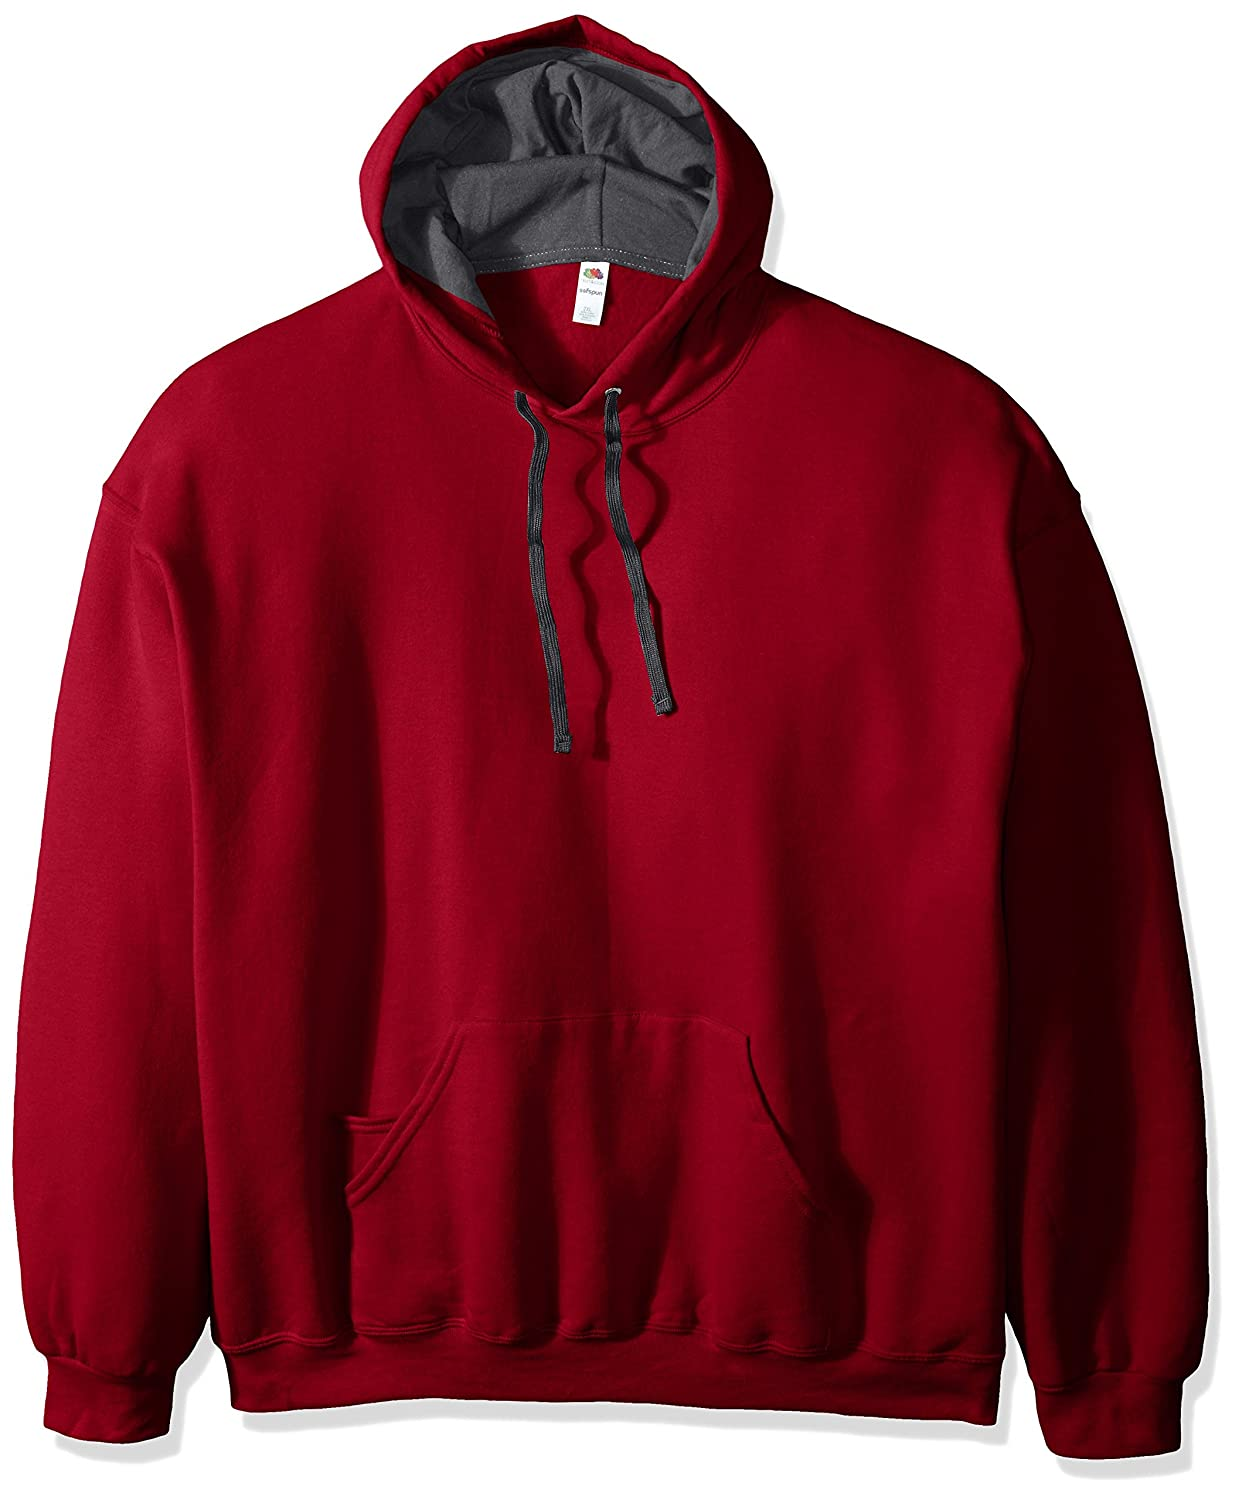 Fruit of the Loom mens Men's Hooded Sweatshirt - Extra Sizes RSF76XR